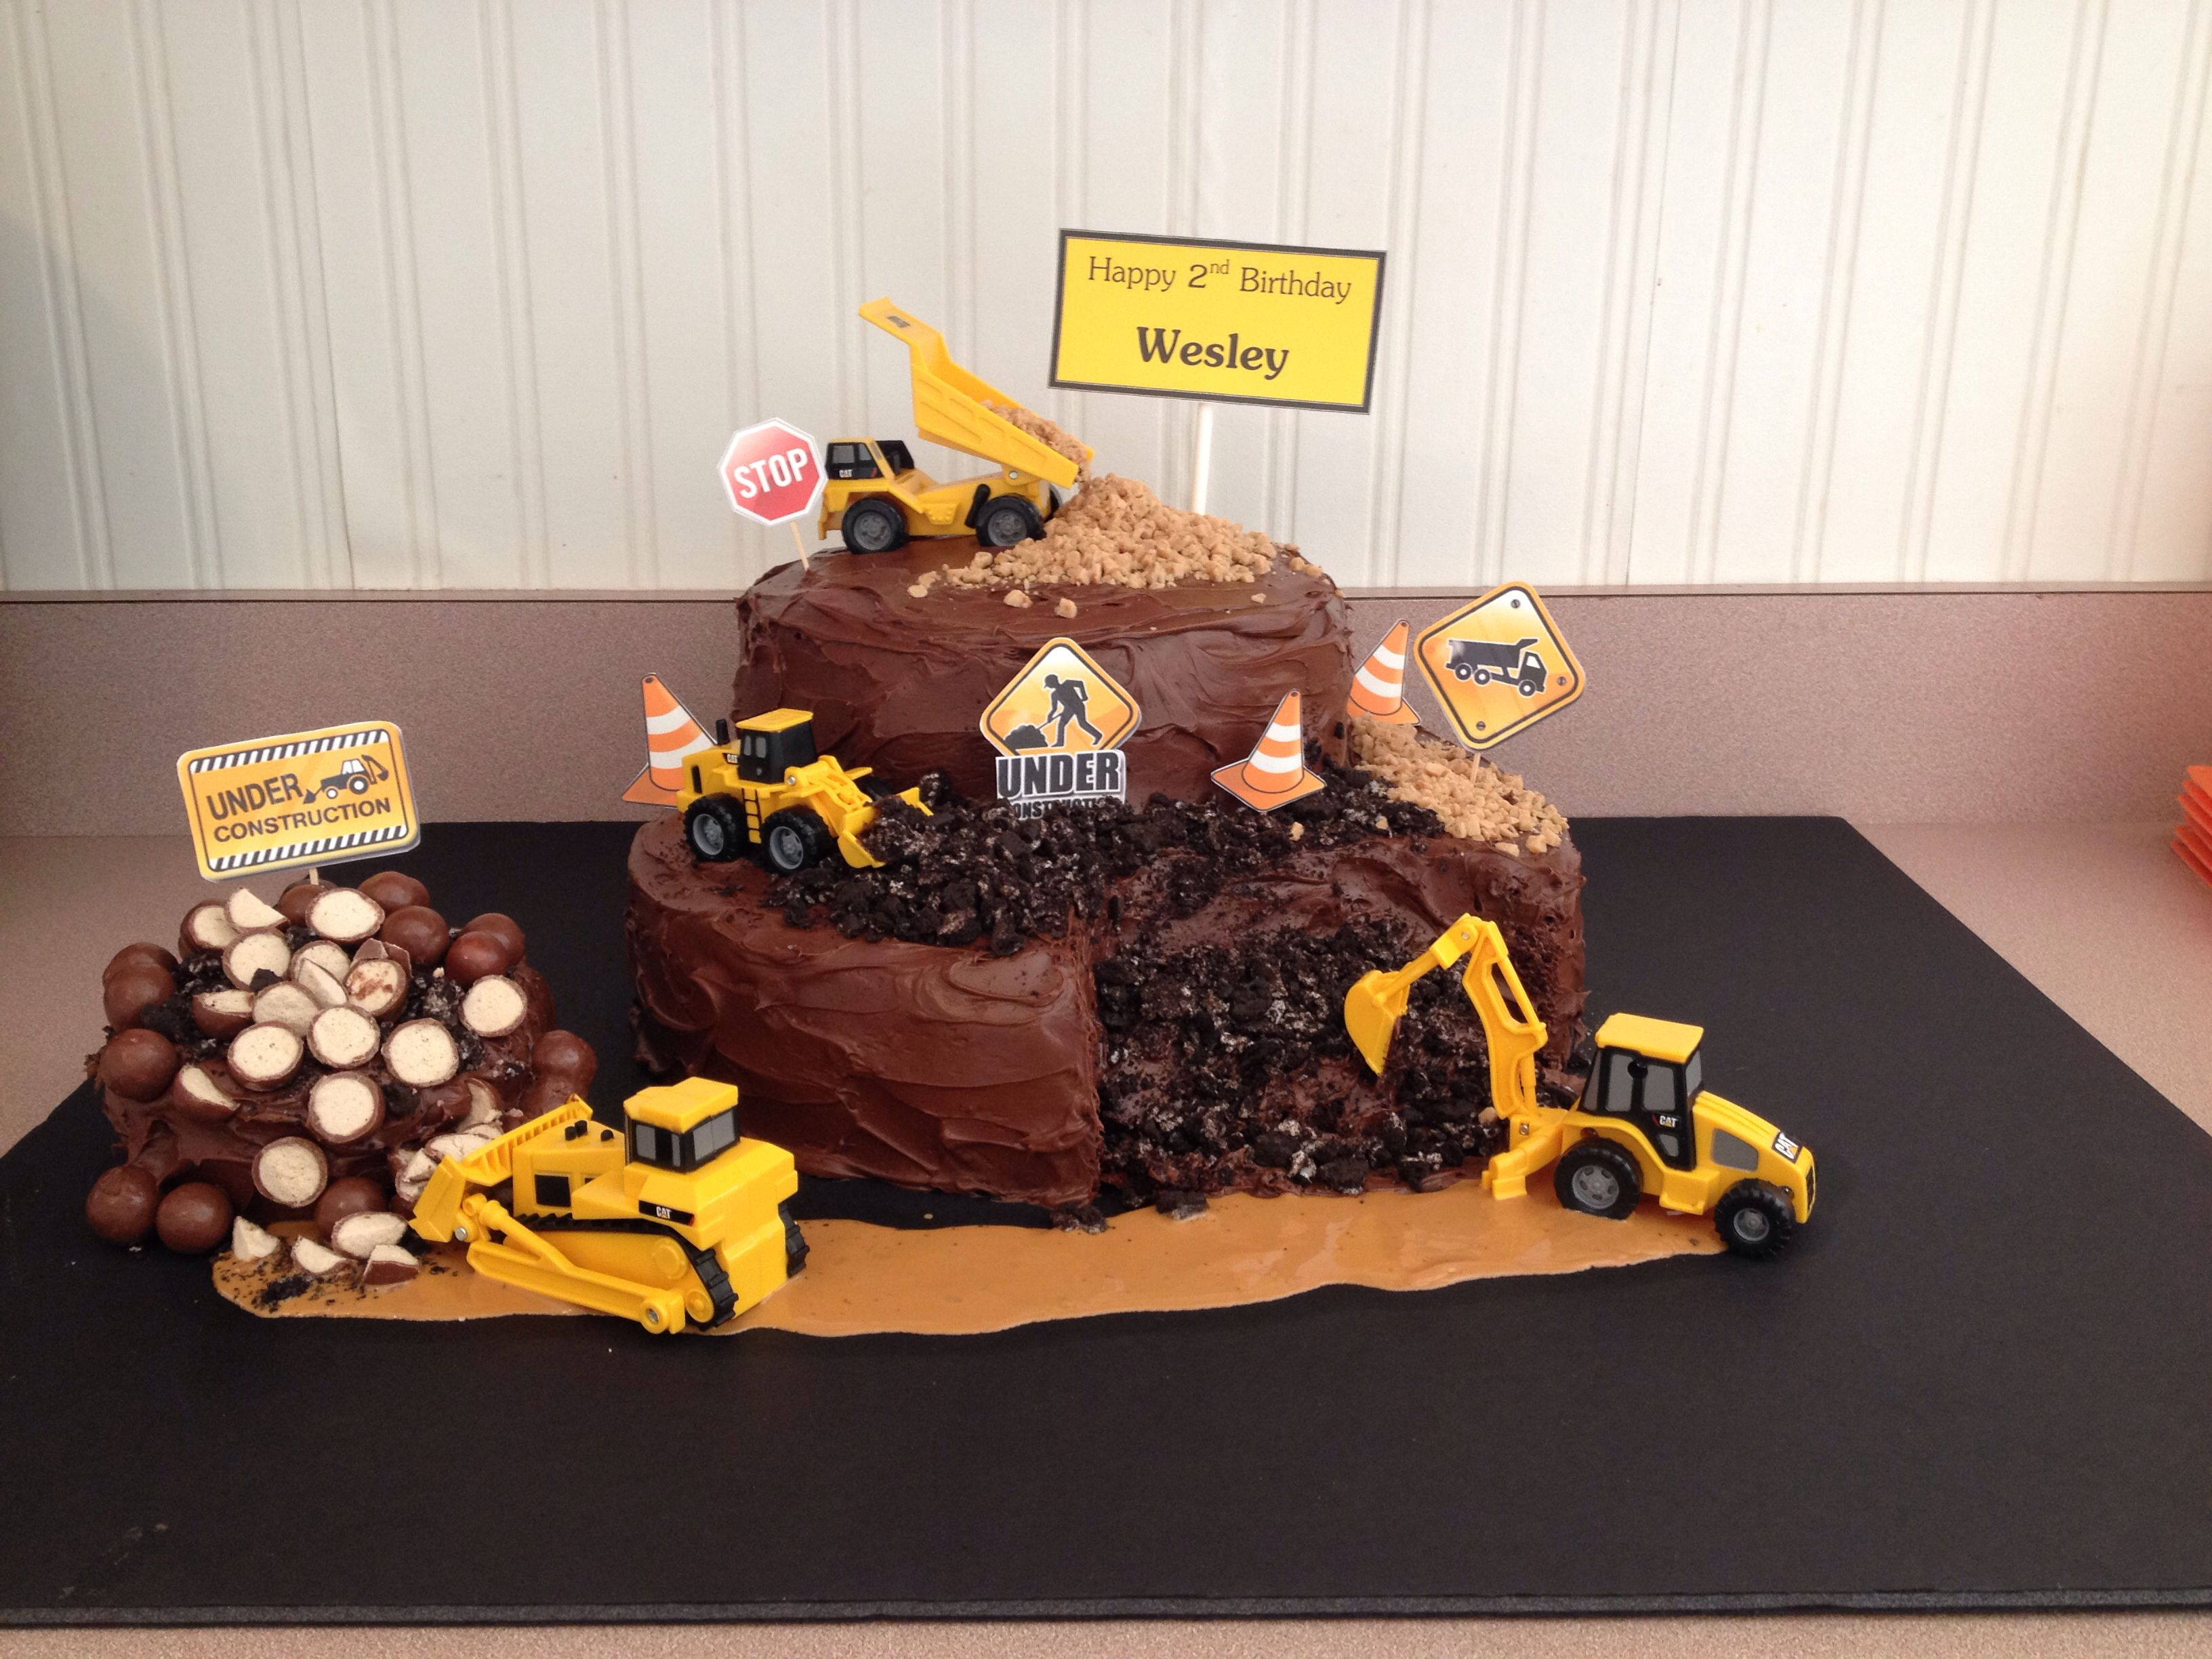 Wesley S Construction Birthday Party Cake Dump Truck Cake With